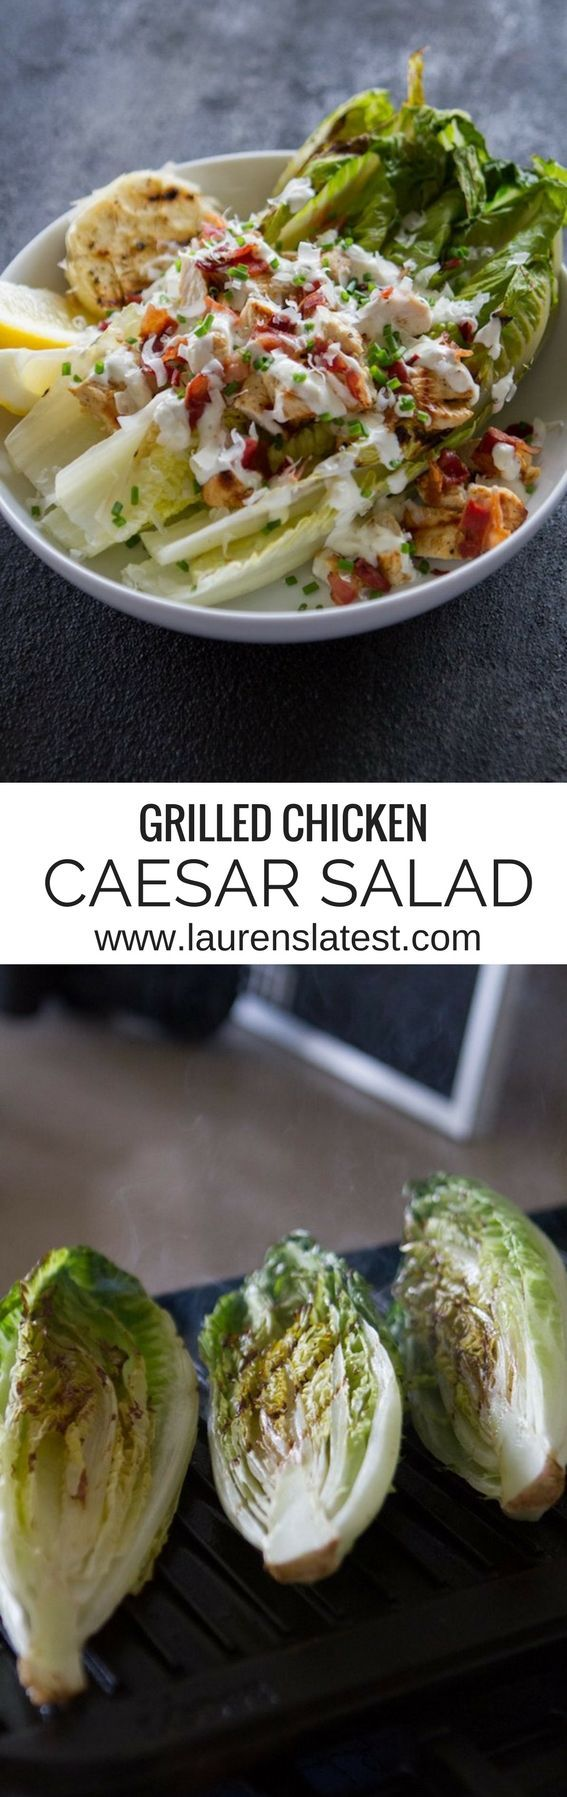 Grilled Chicken Caesar Salad....a healthy lunch or dinner that tastes amazing! If you haven't grilled romaine lettuce before, you will love this updated classic!